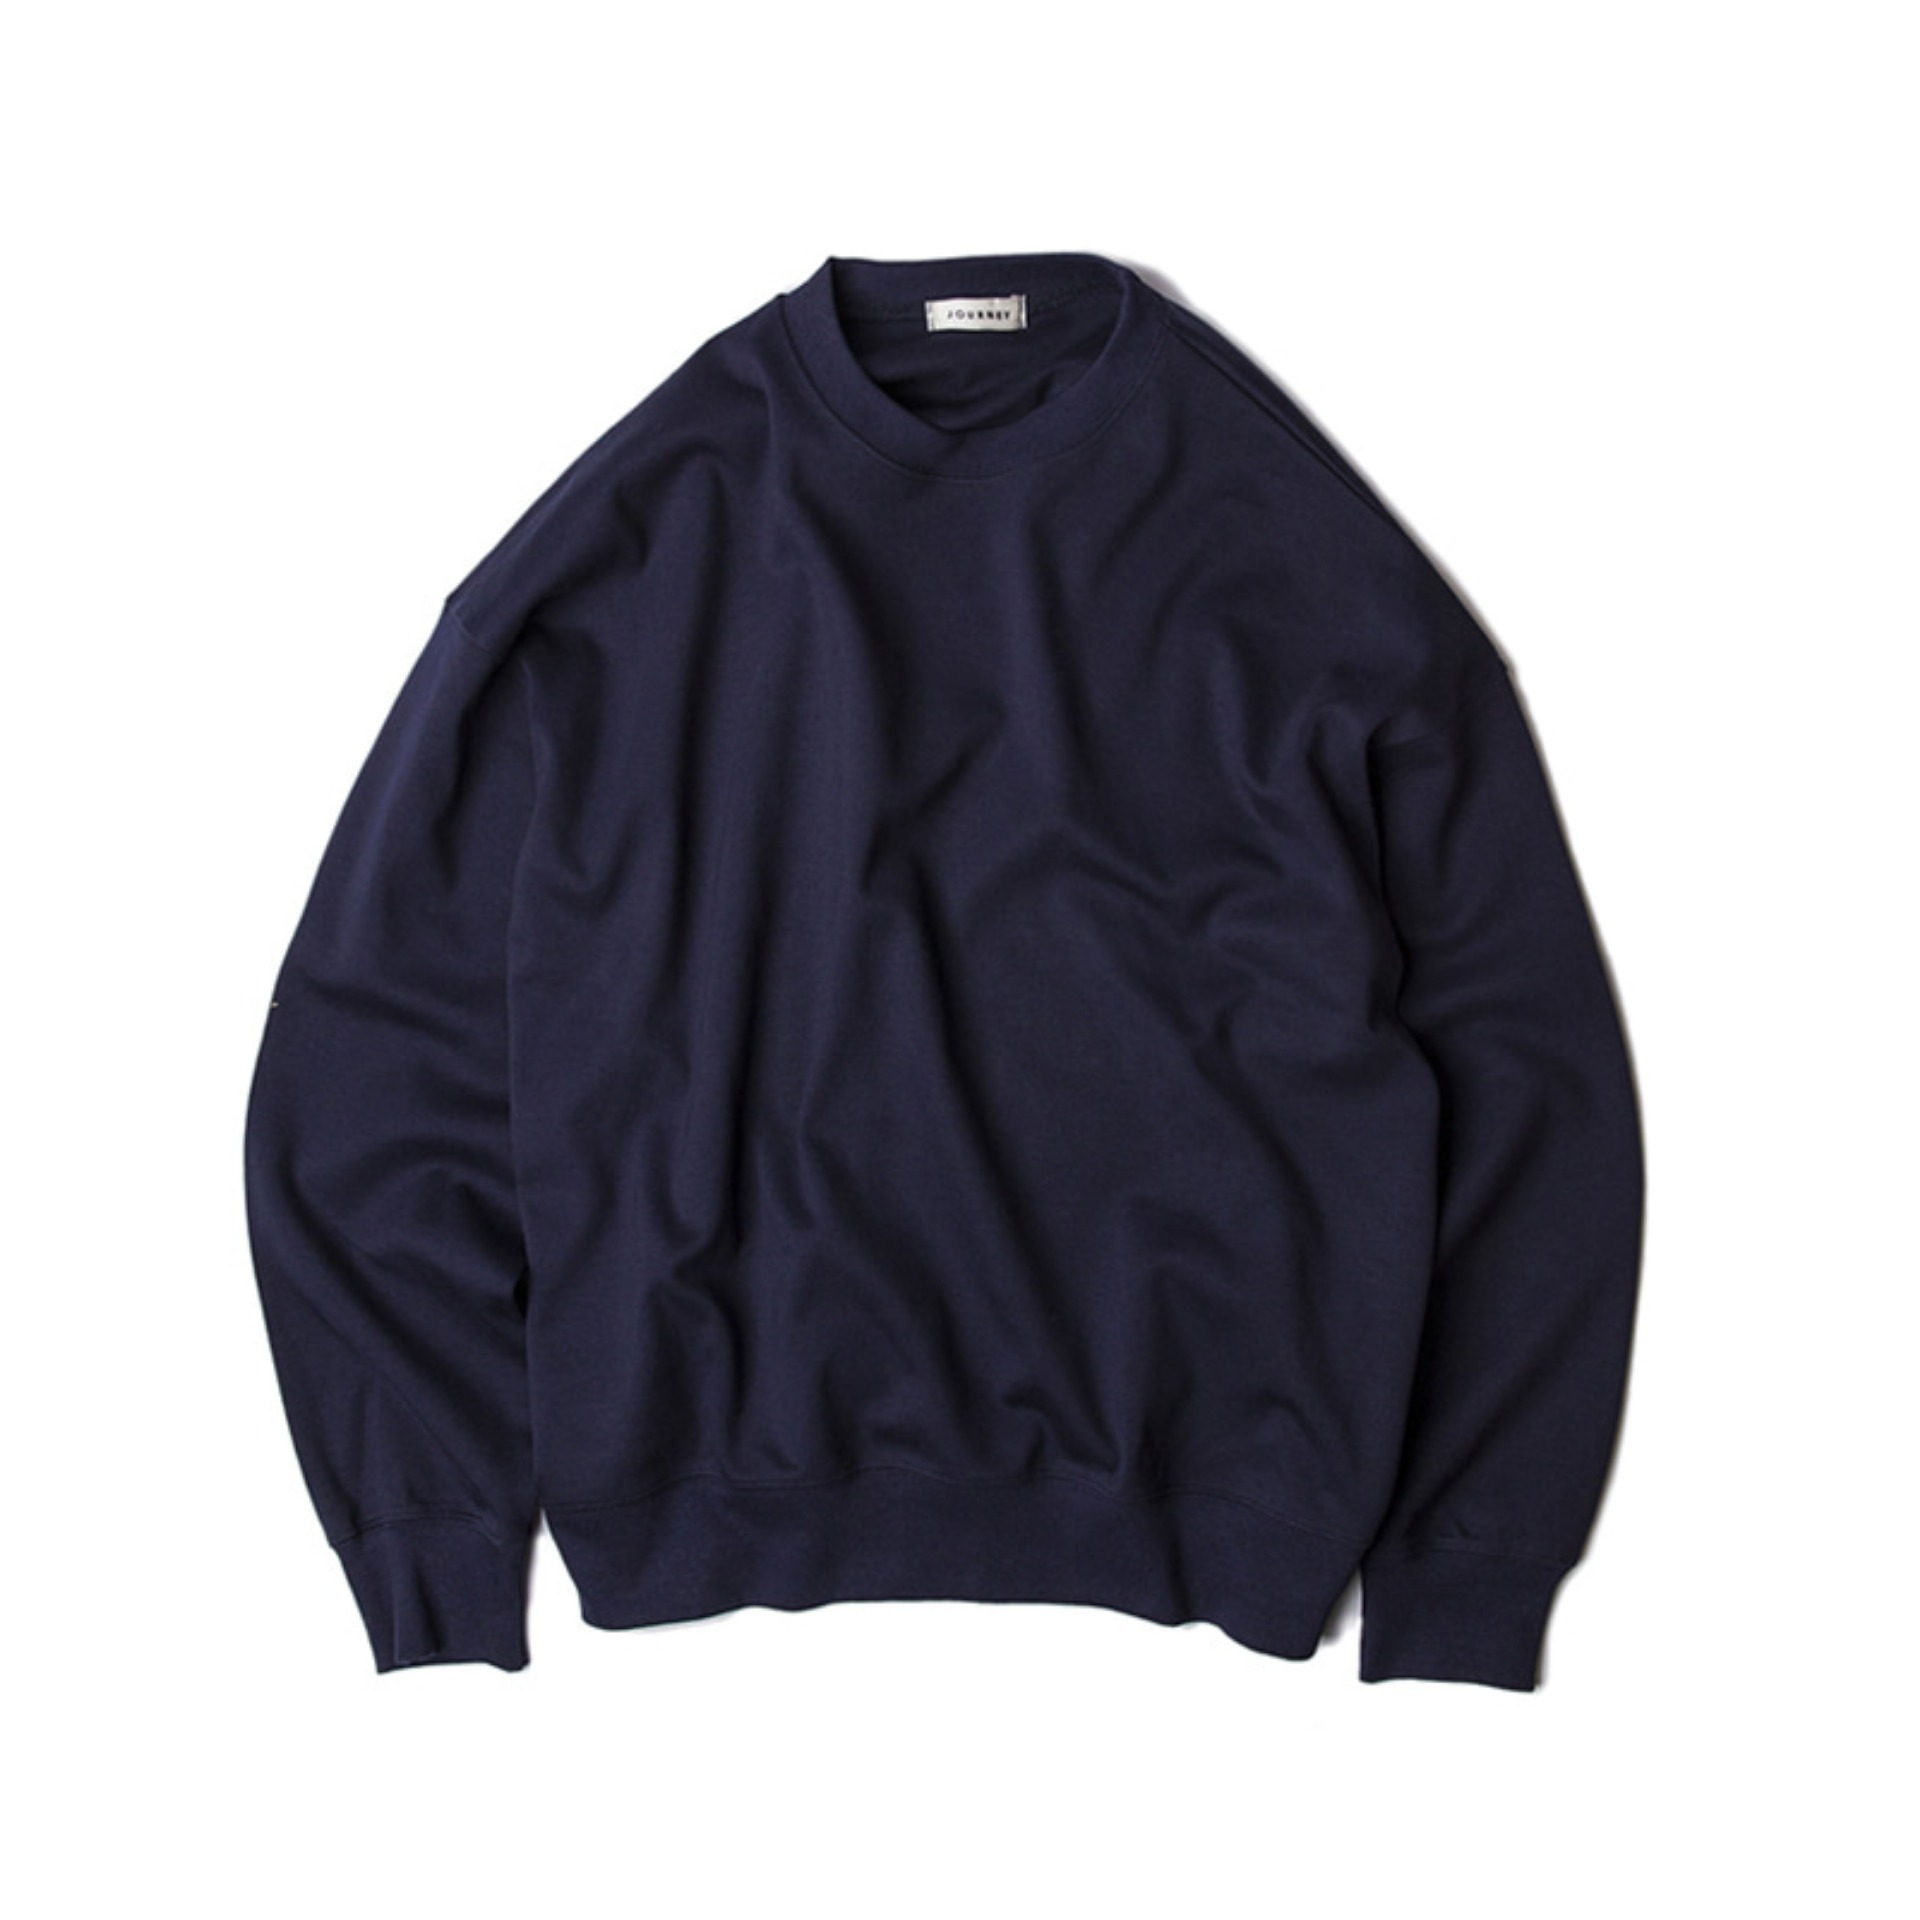 BLANKOVERSIZE FIT SWEATSHIRT(NAVY)